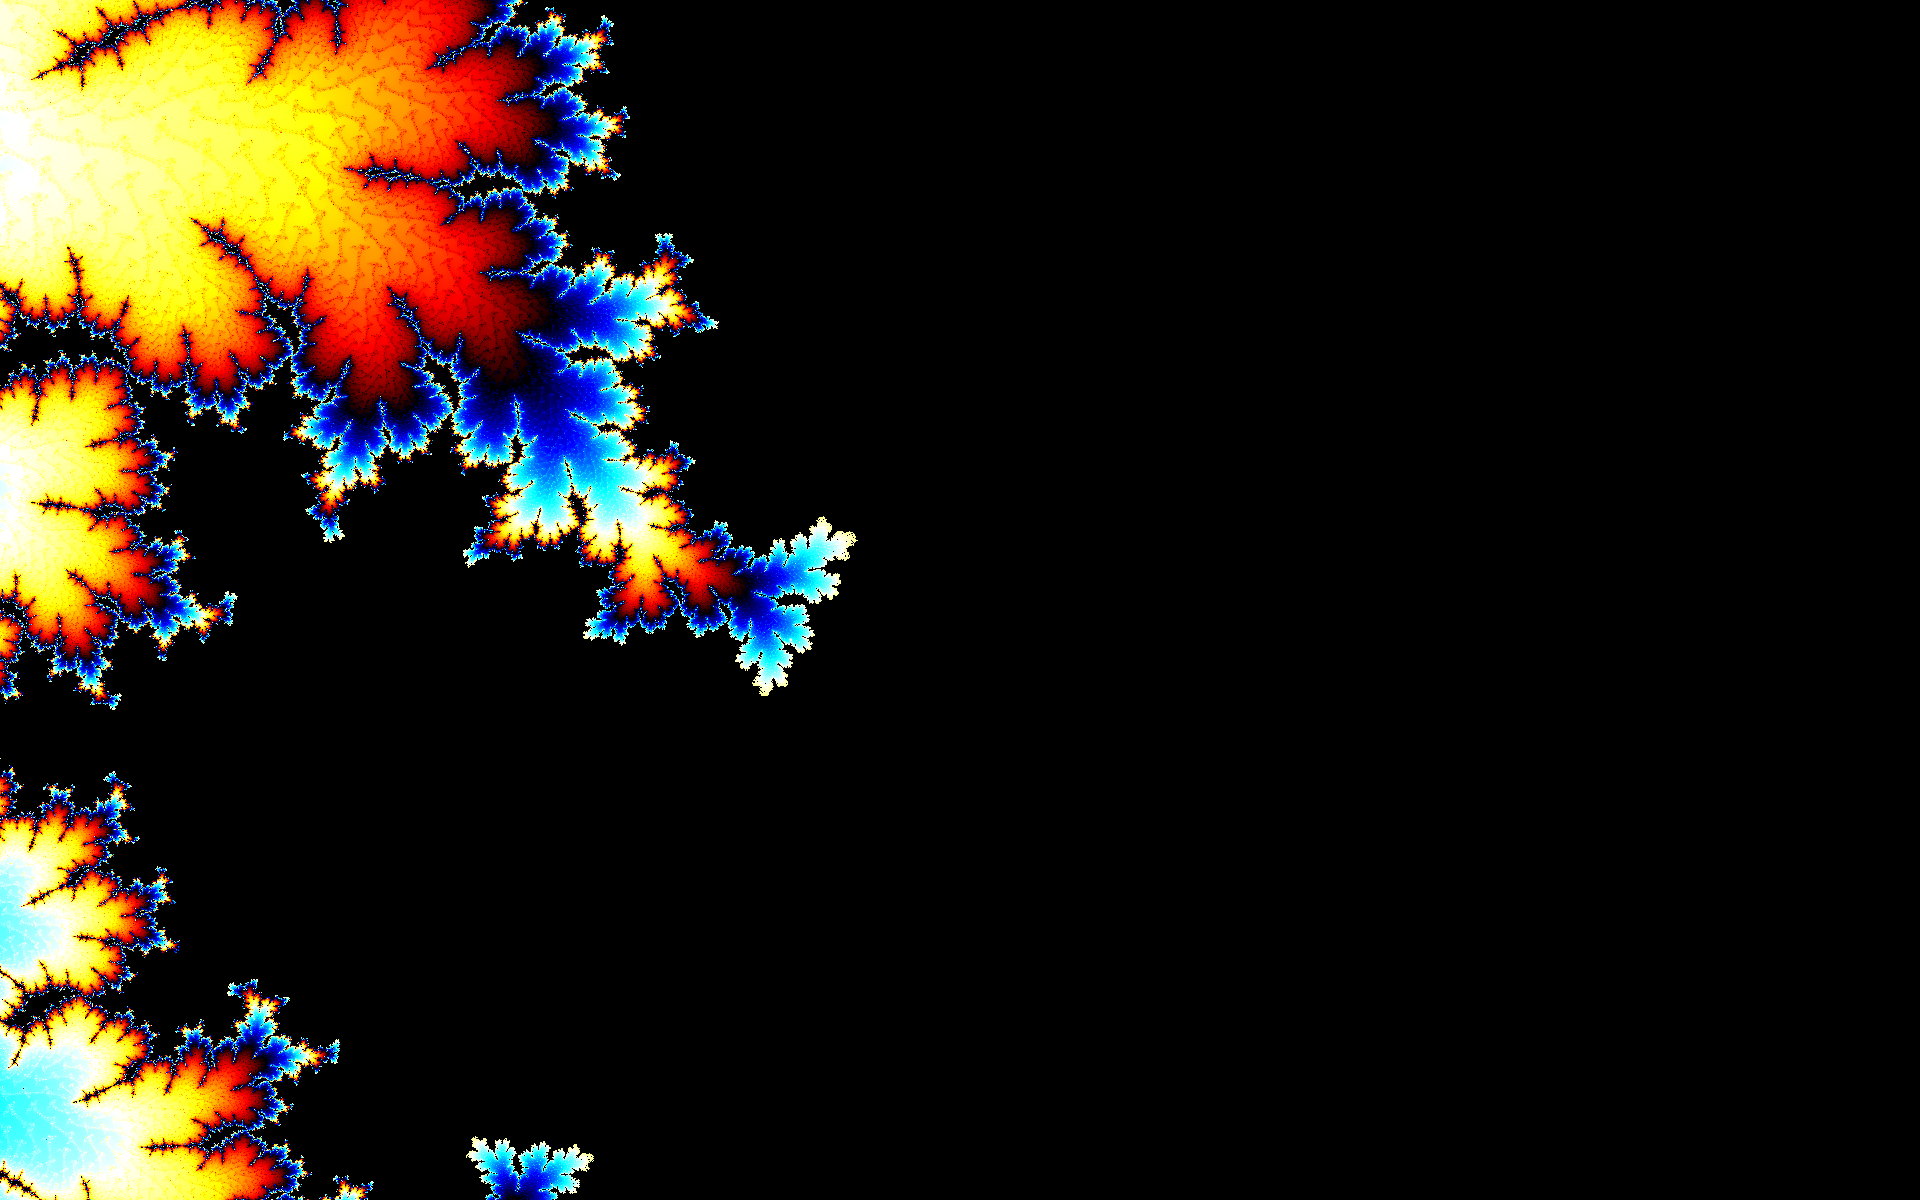 Abstract Fractal Wallpaper Background Pictures to like or share 1920x1200